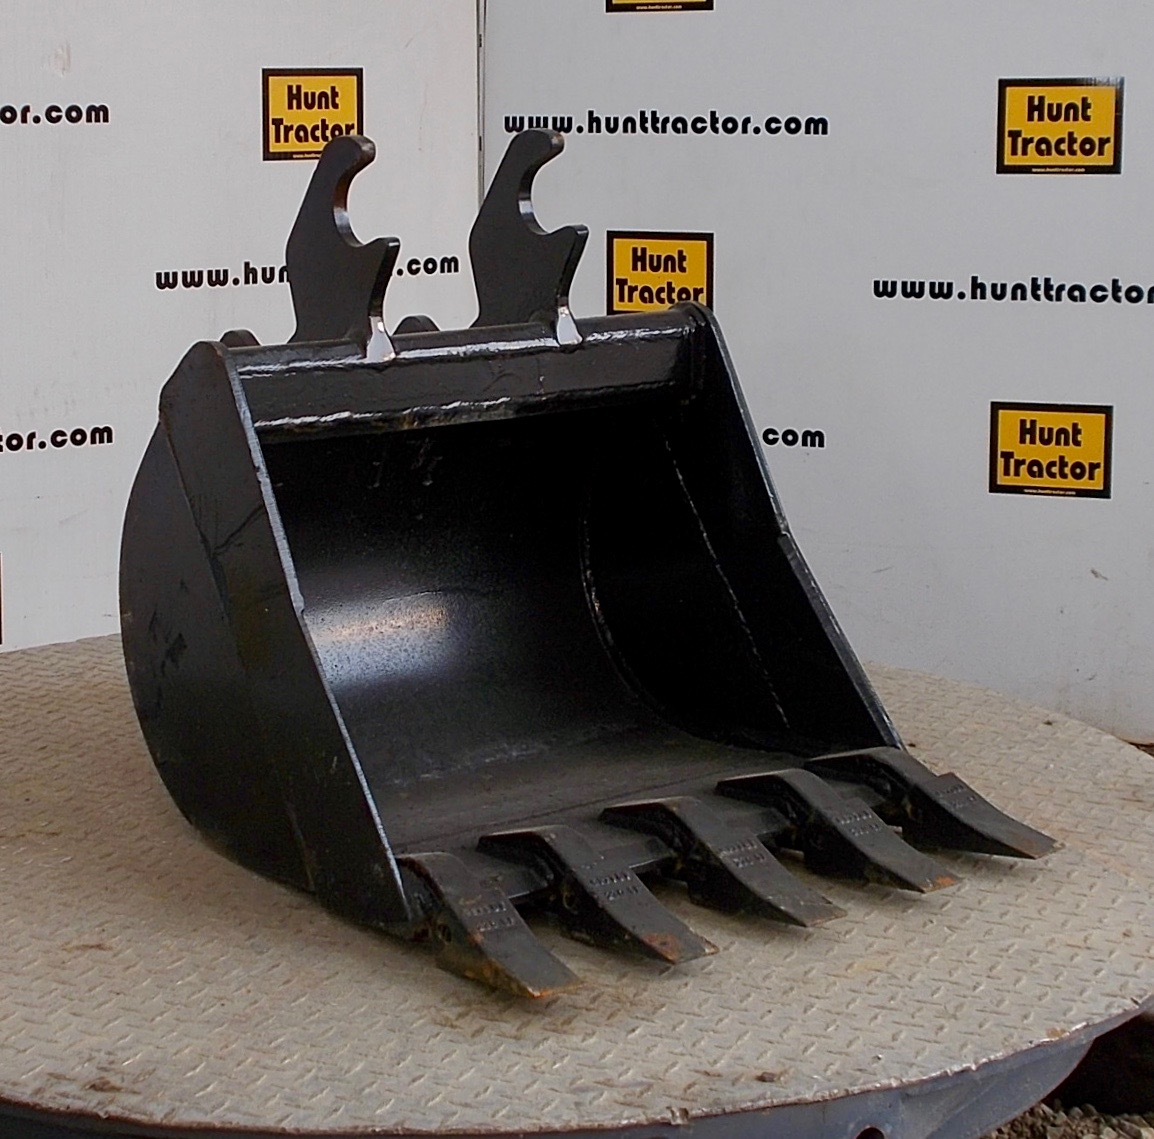 48728-24%22 JD Wedge Bucket-1